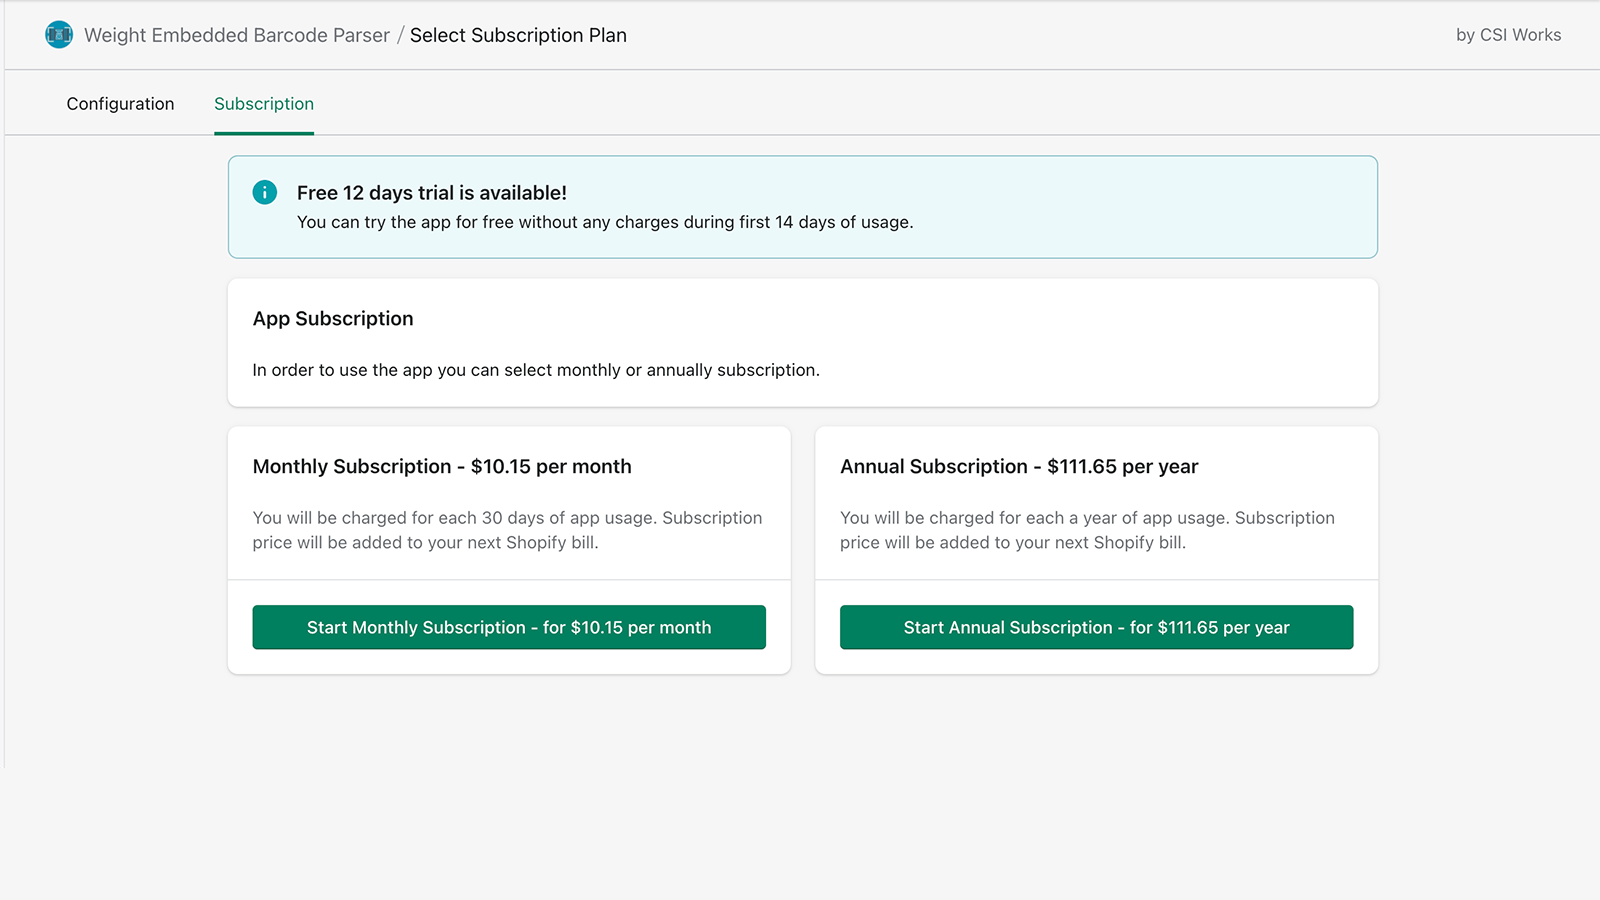 Weight Embedded Barcode Parser has 2 subscription options